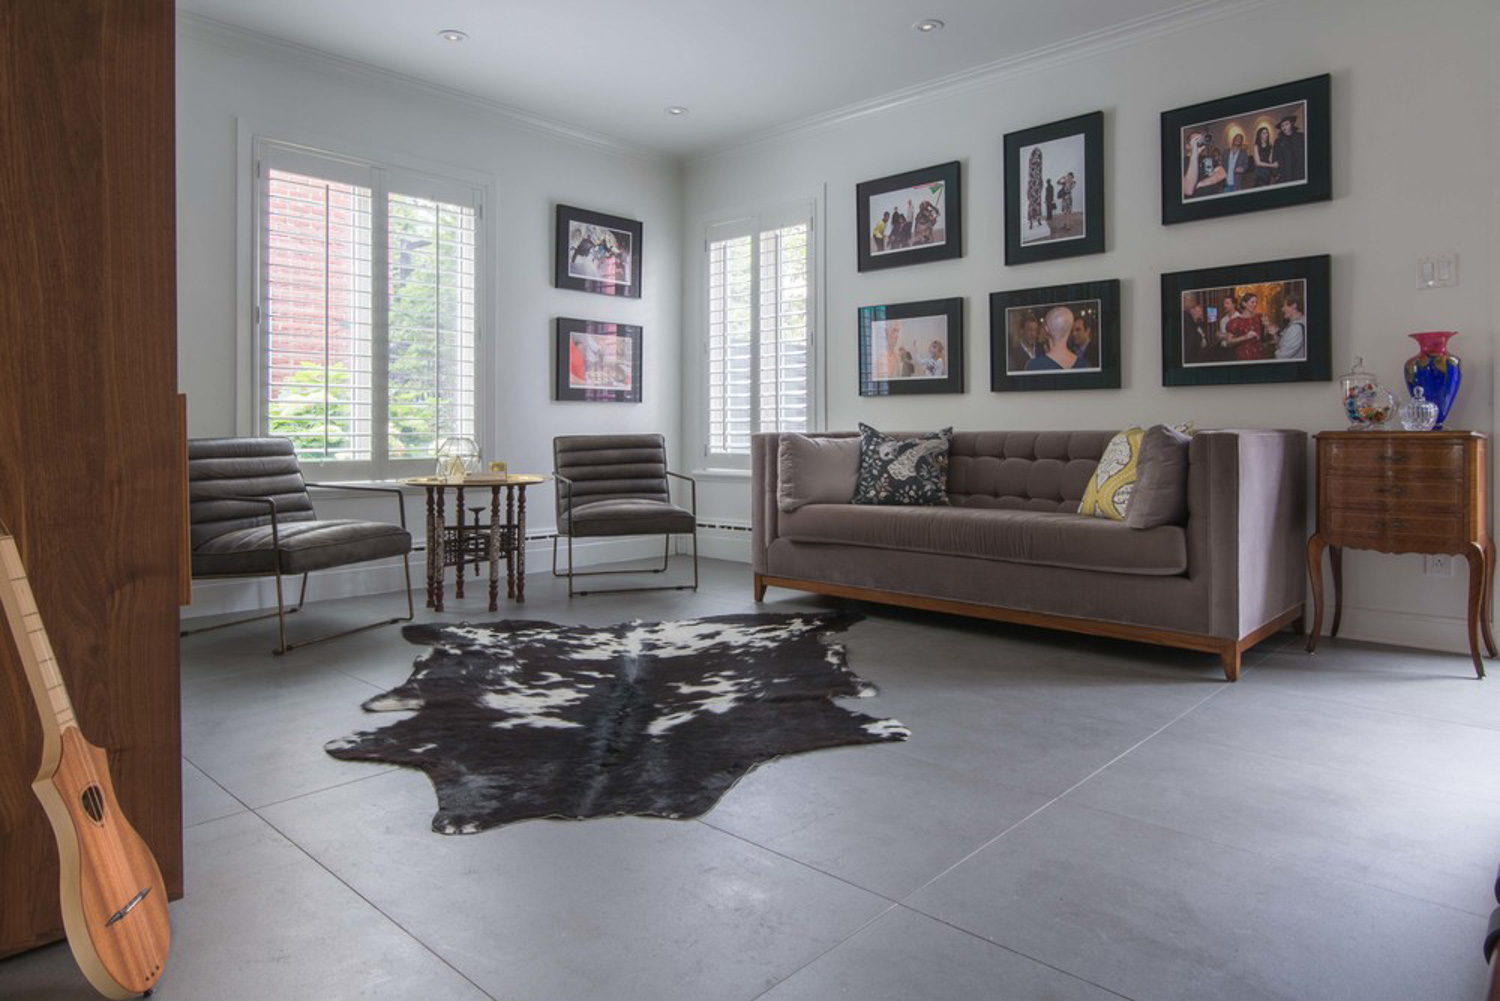 Real Estate Photography - Sotheby's Realty